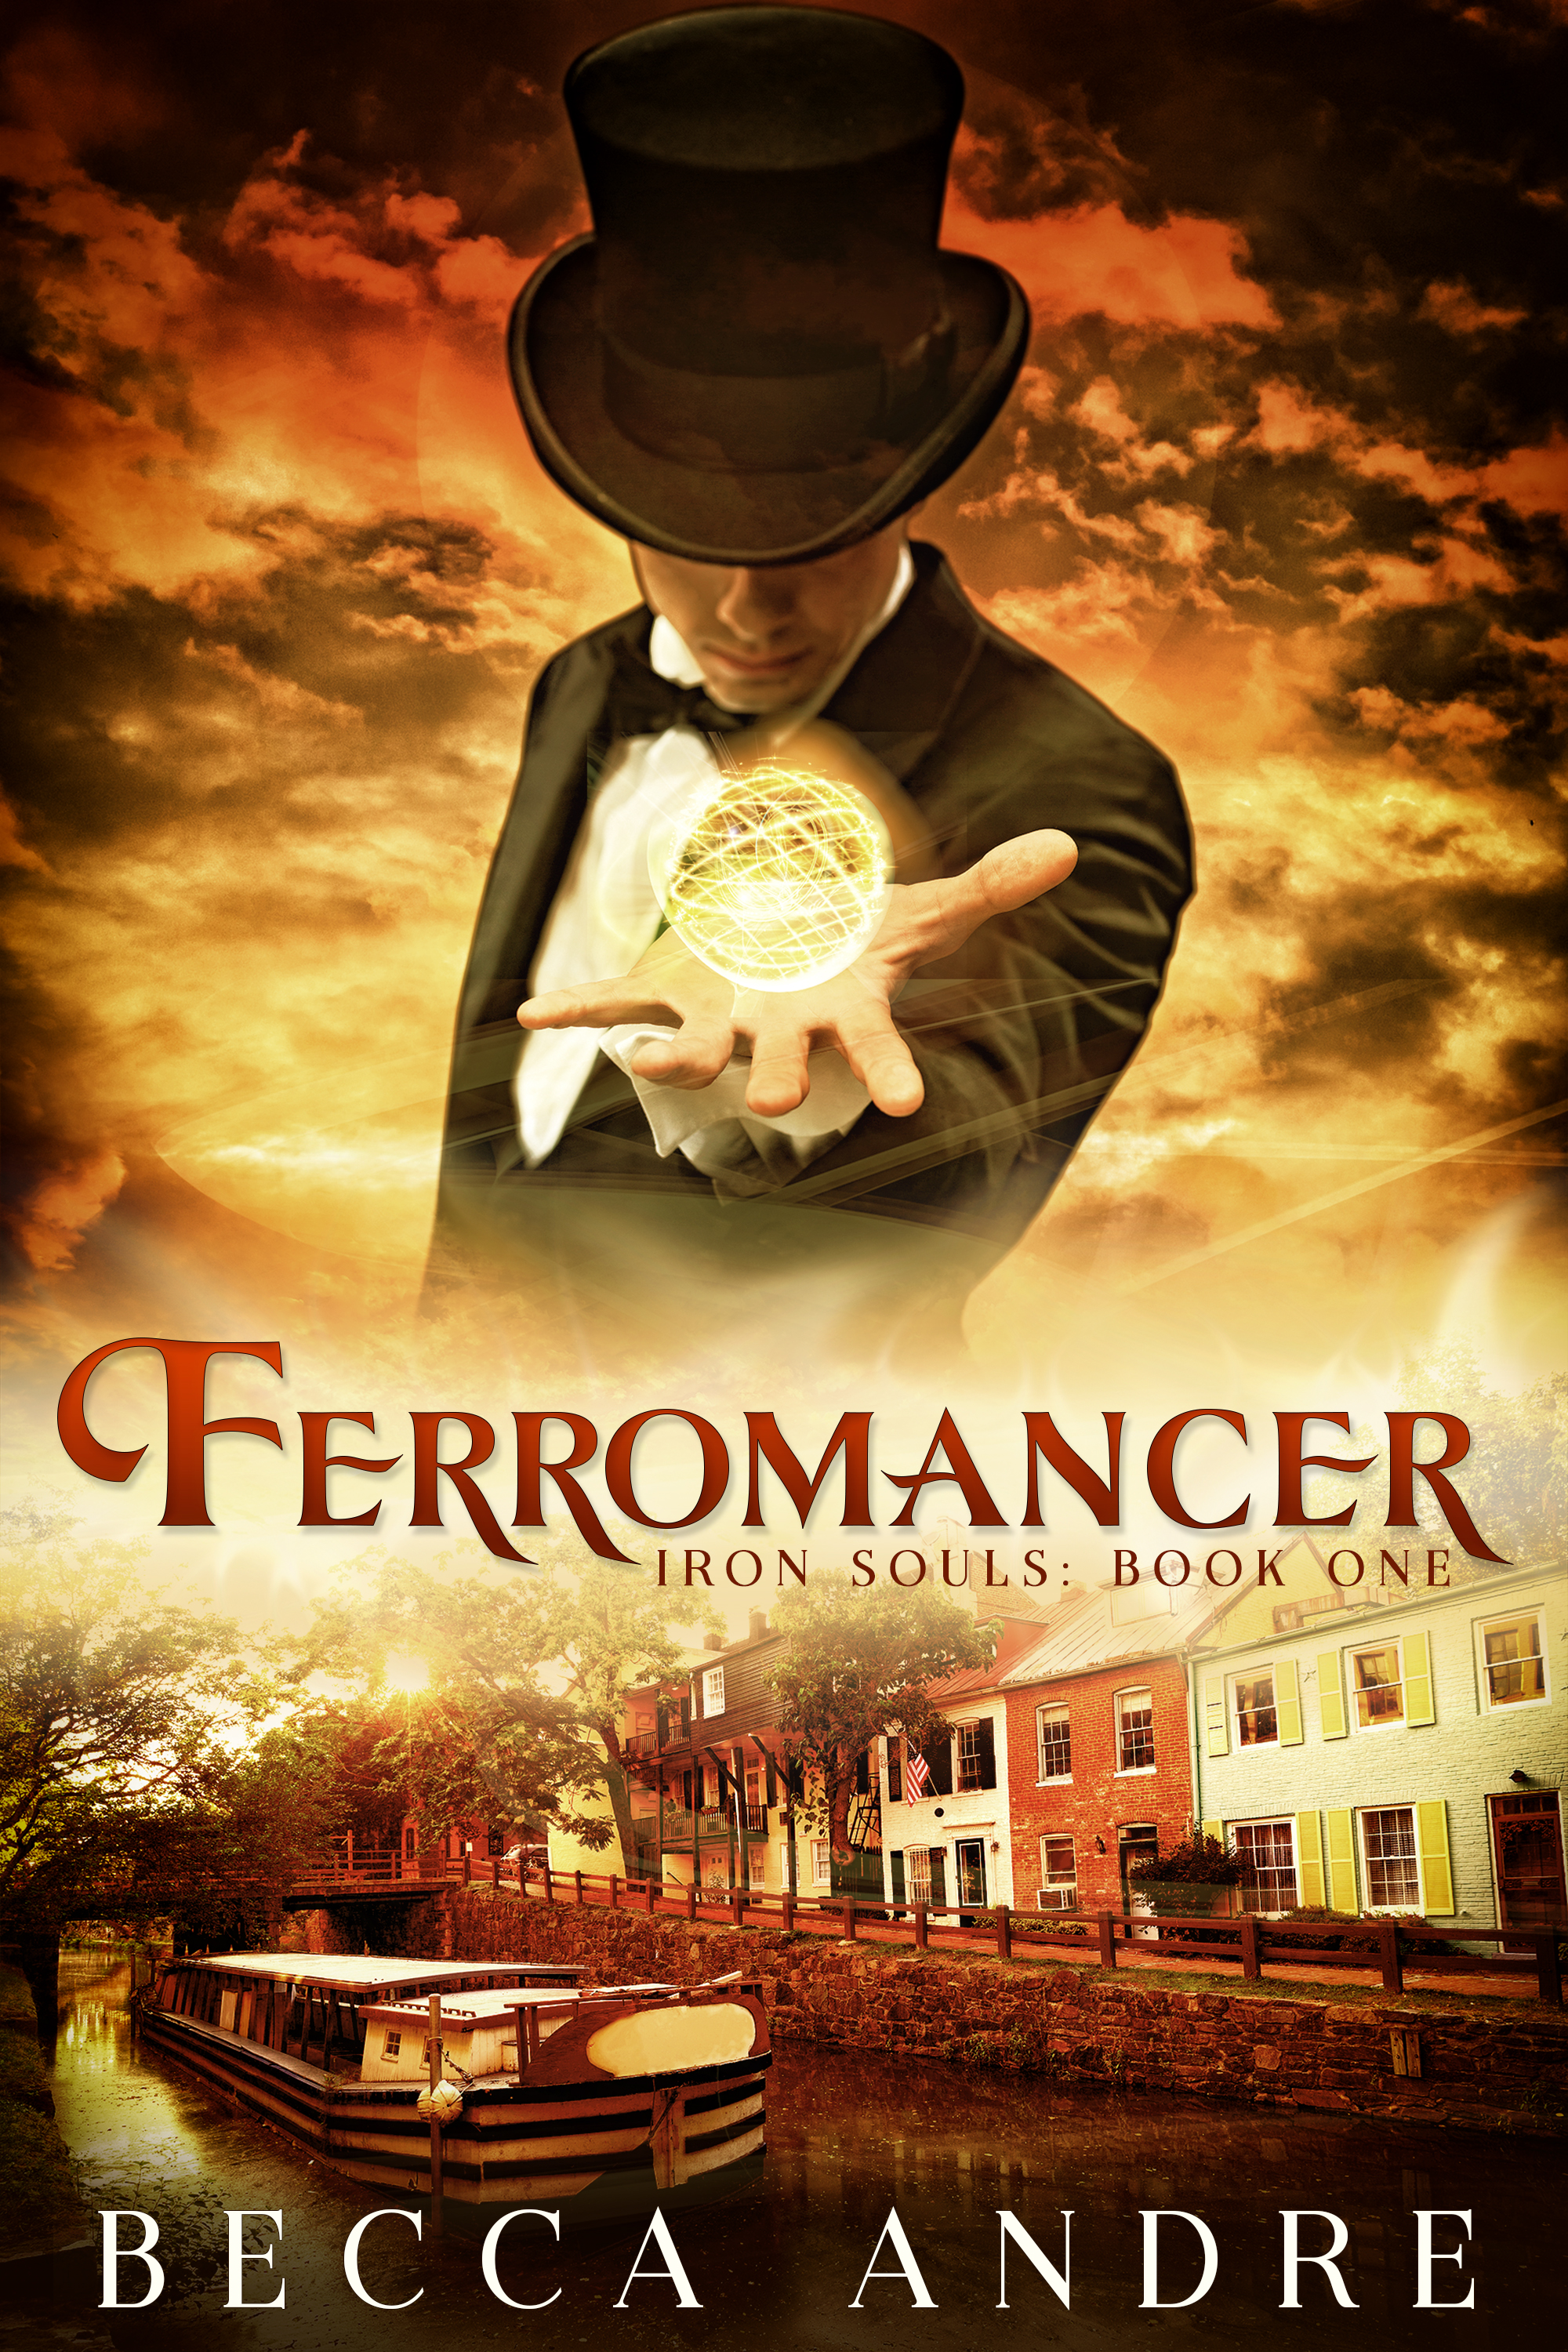 Ferromancer, Iron Souls, Book 1